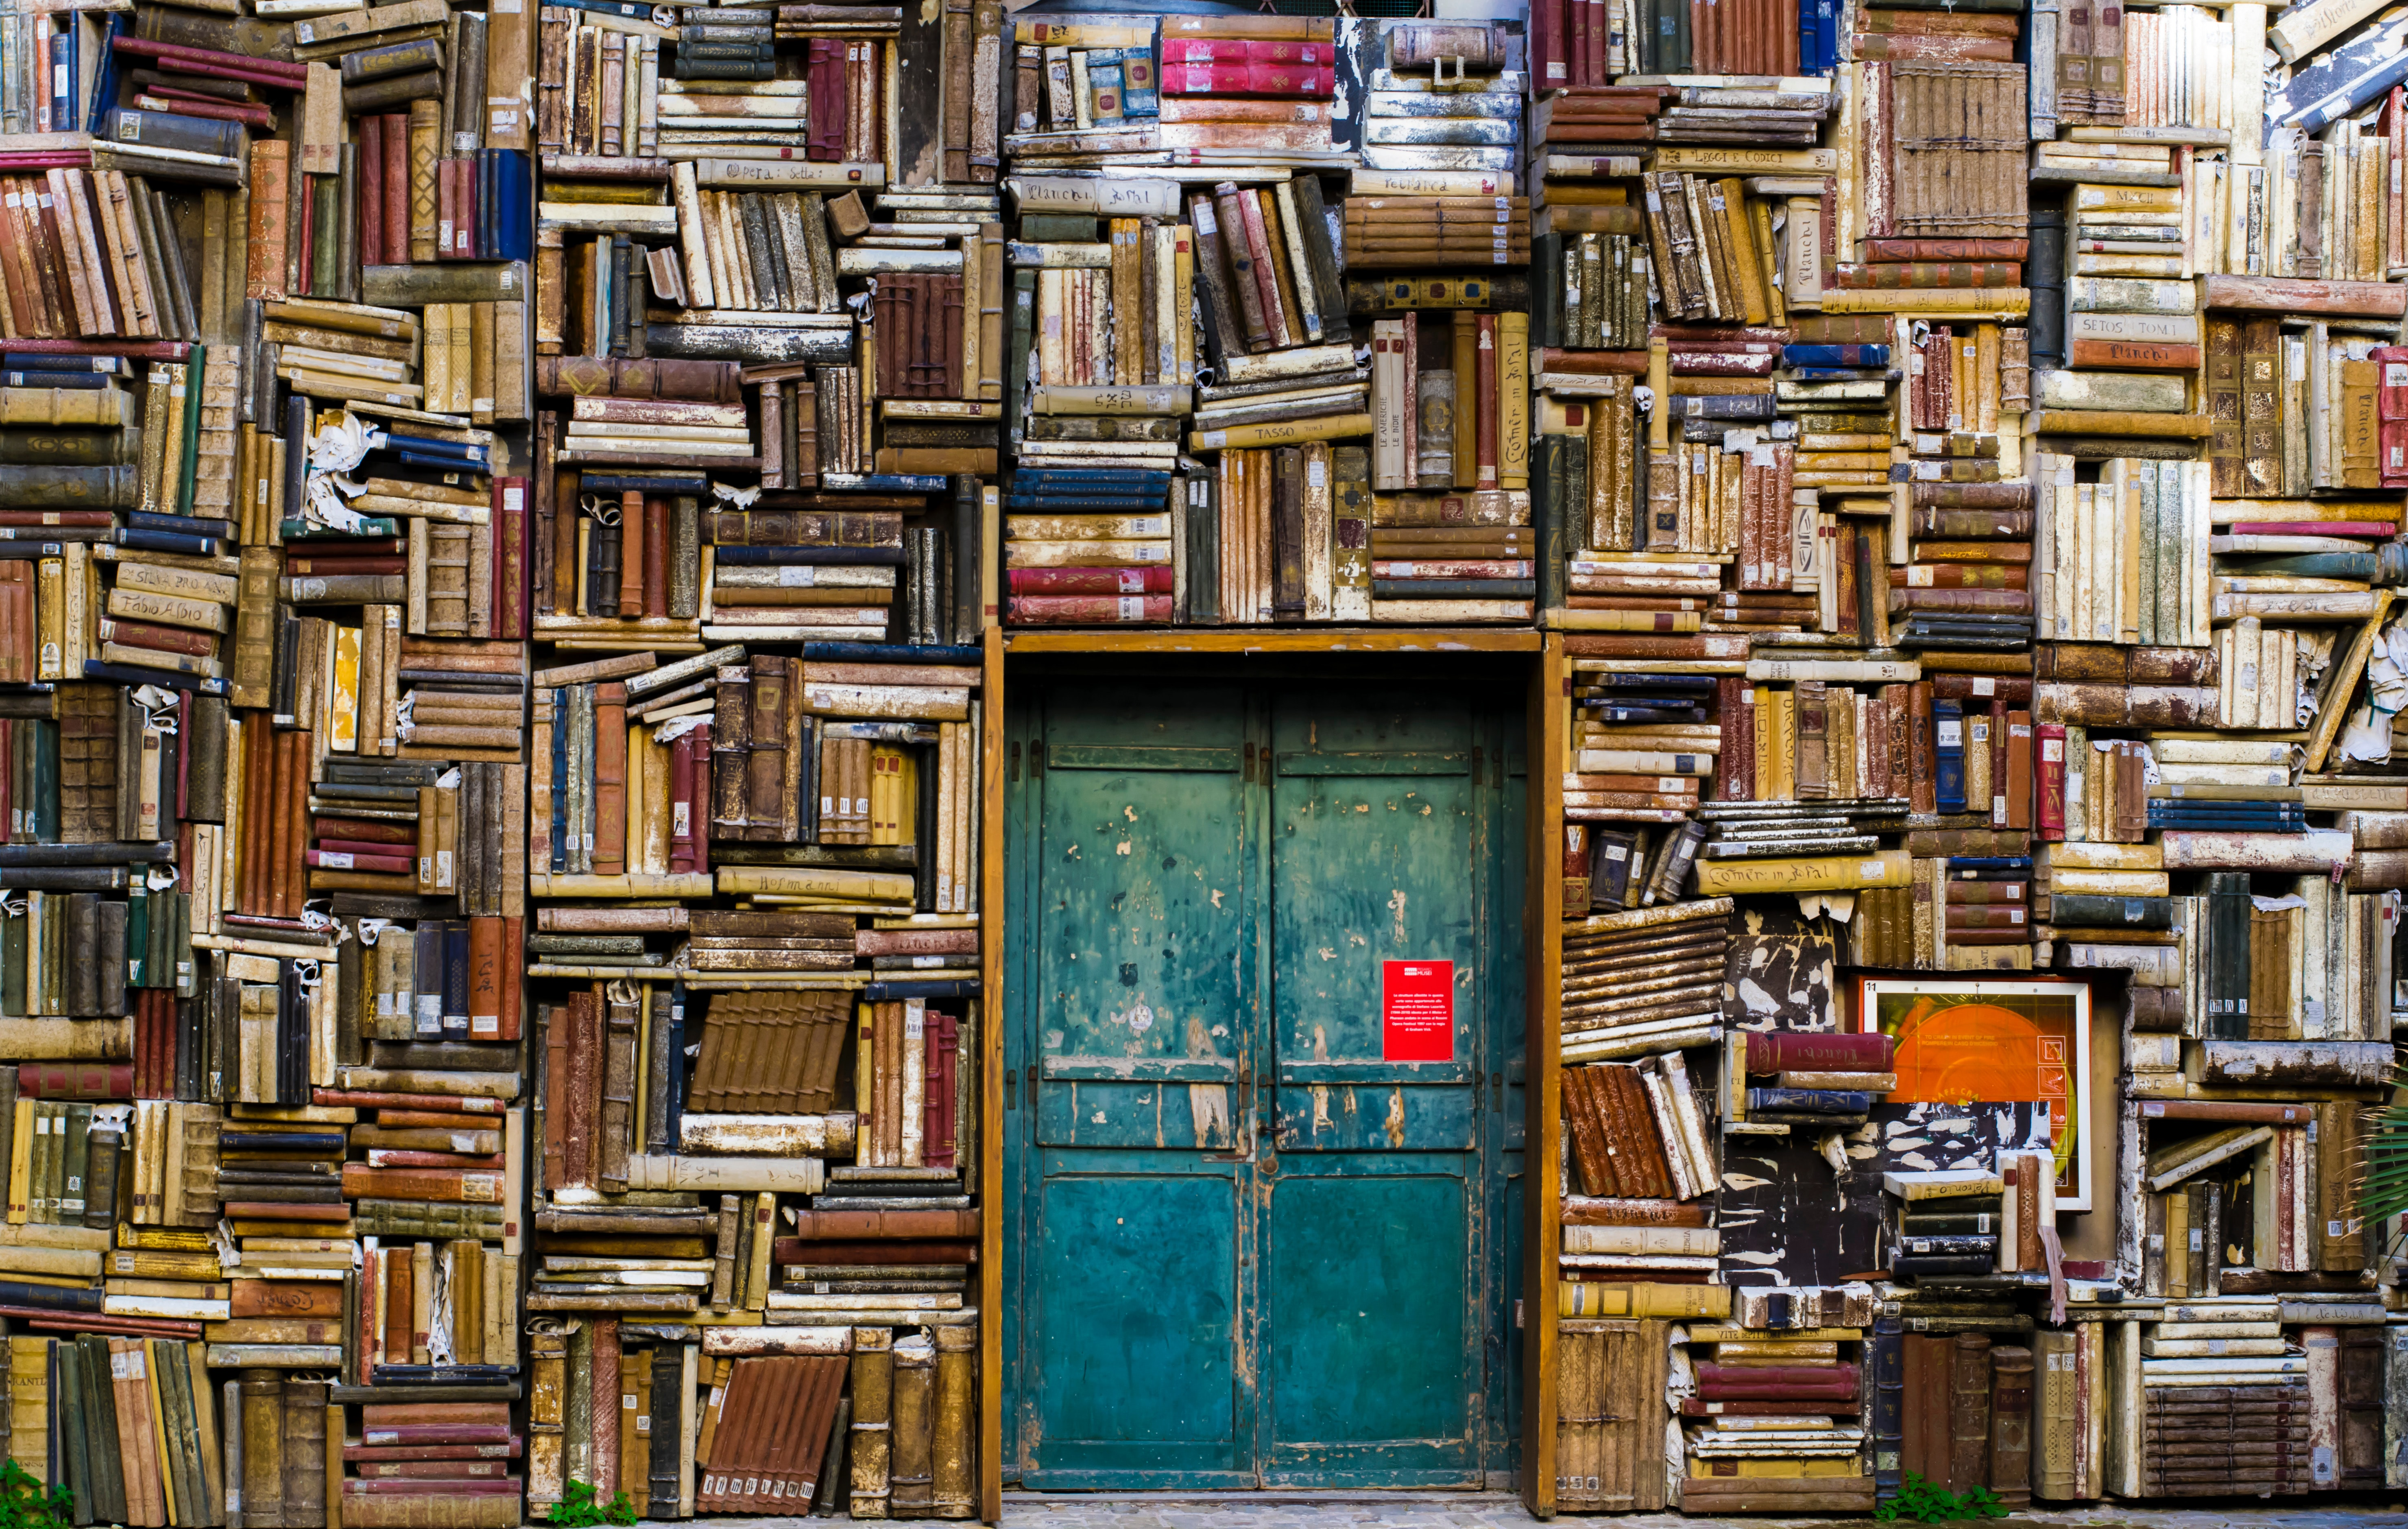 Picture of a wall of books with a blue door in the center.